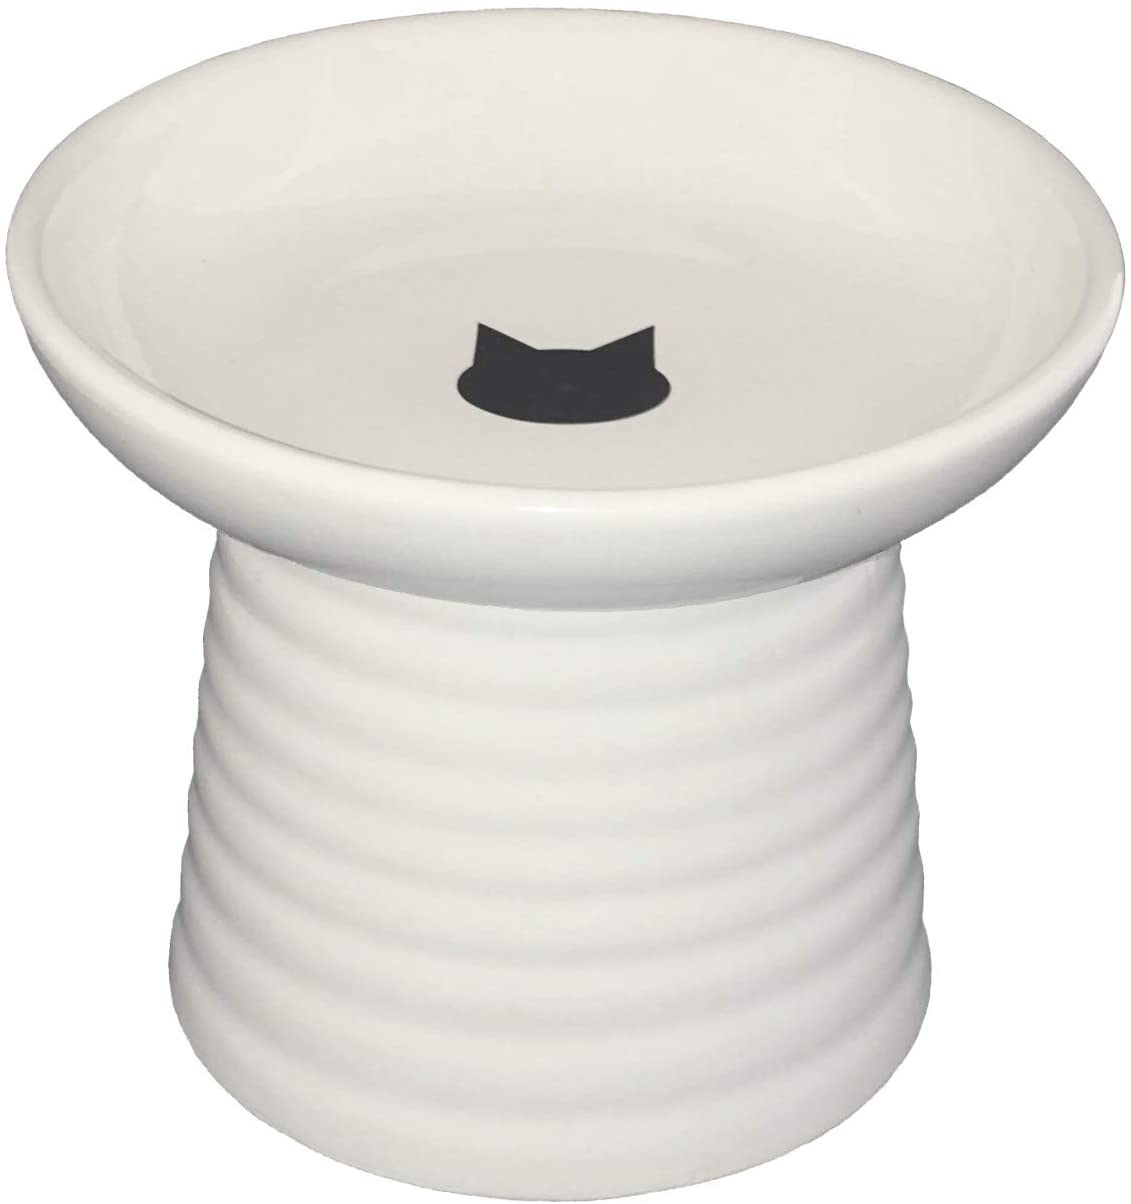 Raised Cat Food or Water Bowl - Vet Recommended Height (5) and Width (6), 1 inch deep, holds 2 cups food or 12 oz water